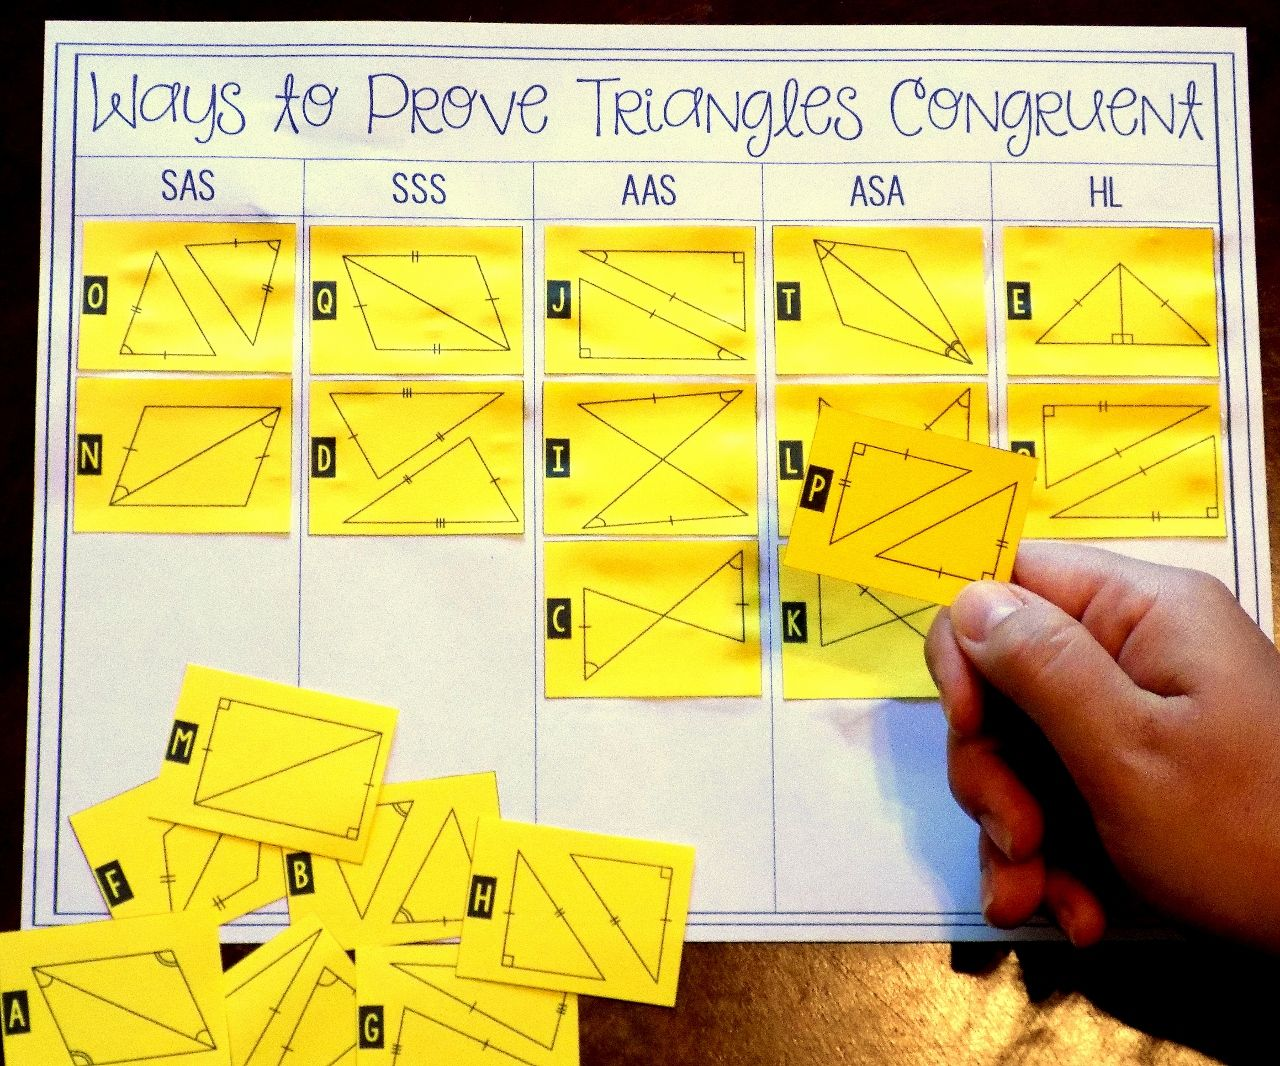 Proving Triangles Congruent Card Sort Teaching geometry